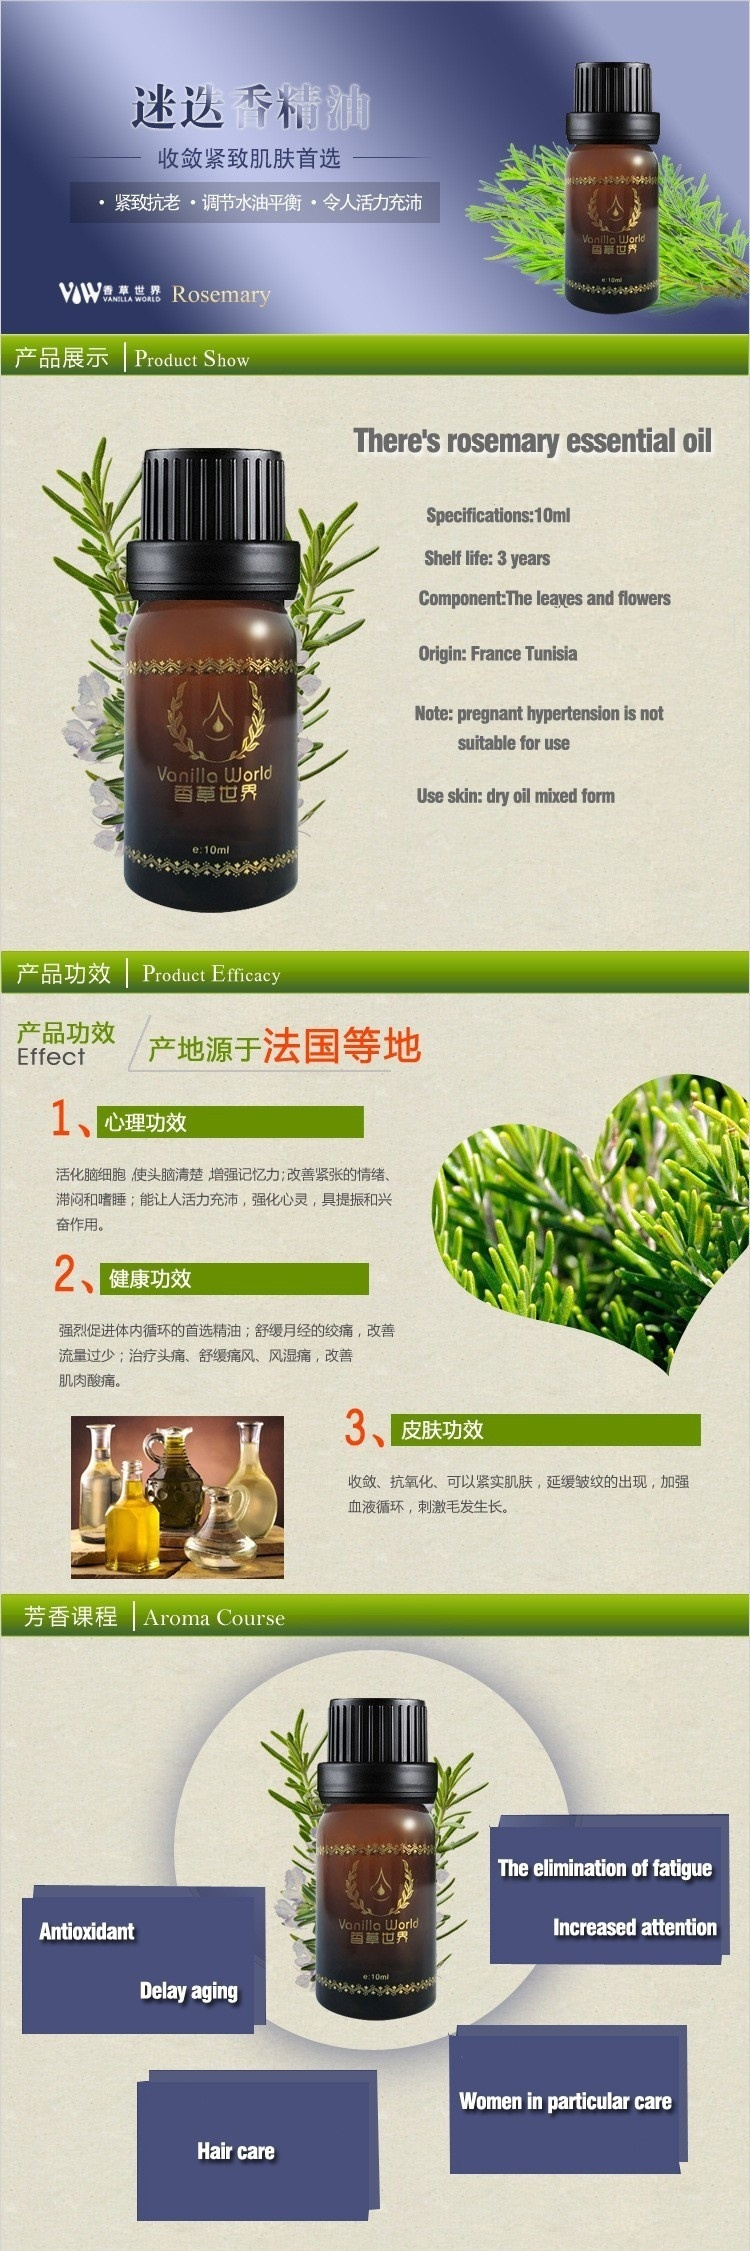 Vanilla world  Stovepipe essential oil face-lift essential oil slimming massage weight loss rosemary 10ml deodorization